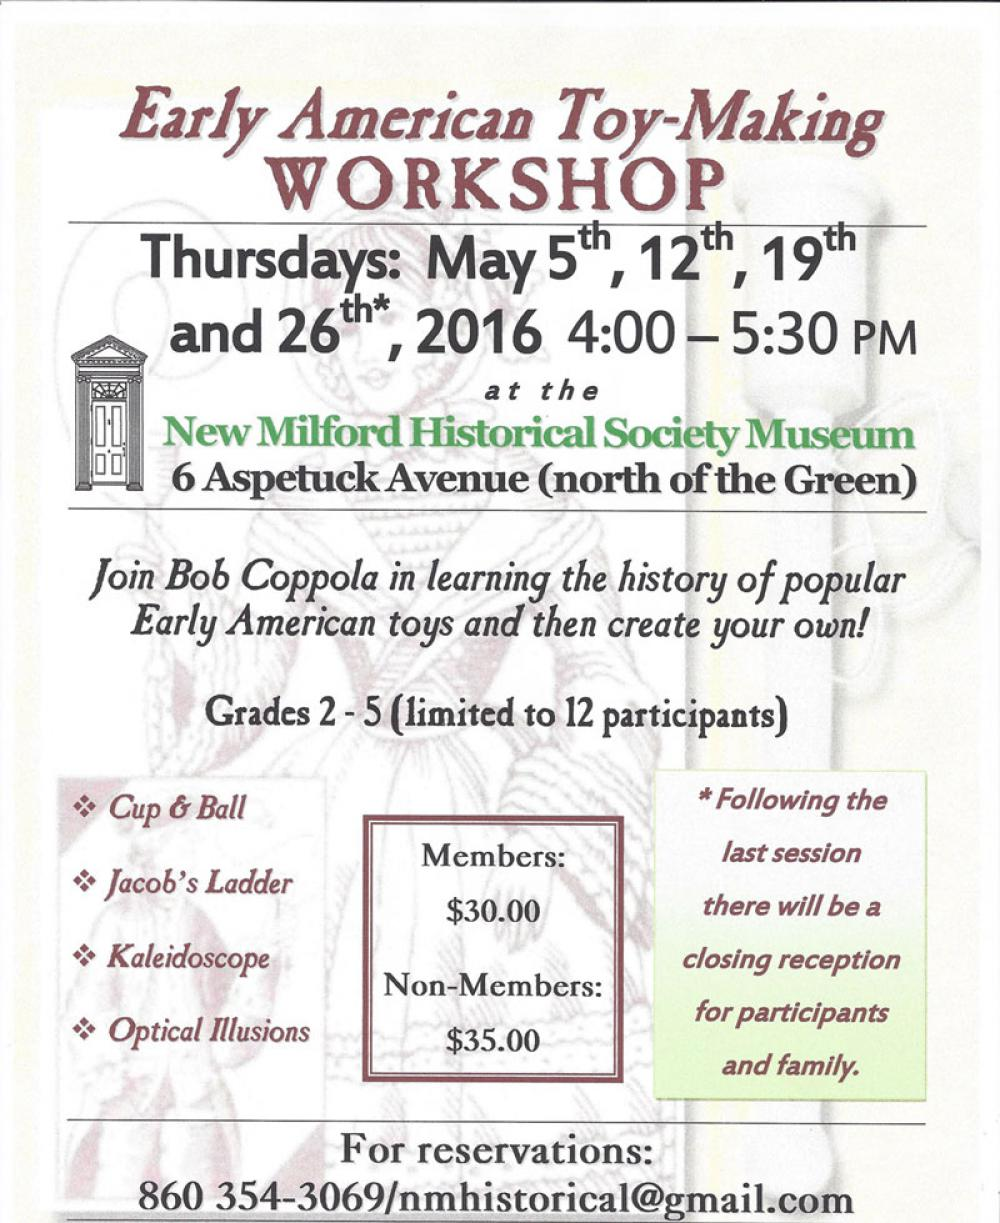 Join Bob Coppola in learning the history of early American toys, then create your own!